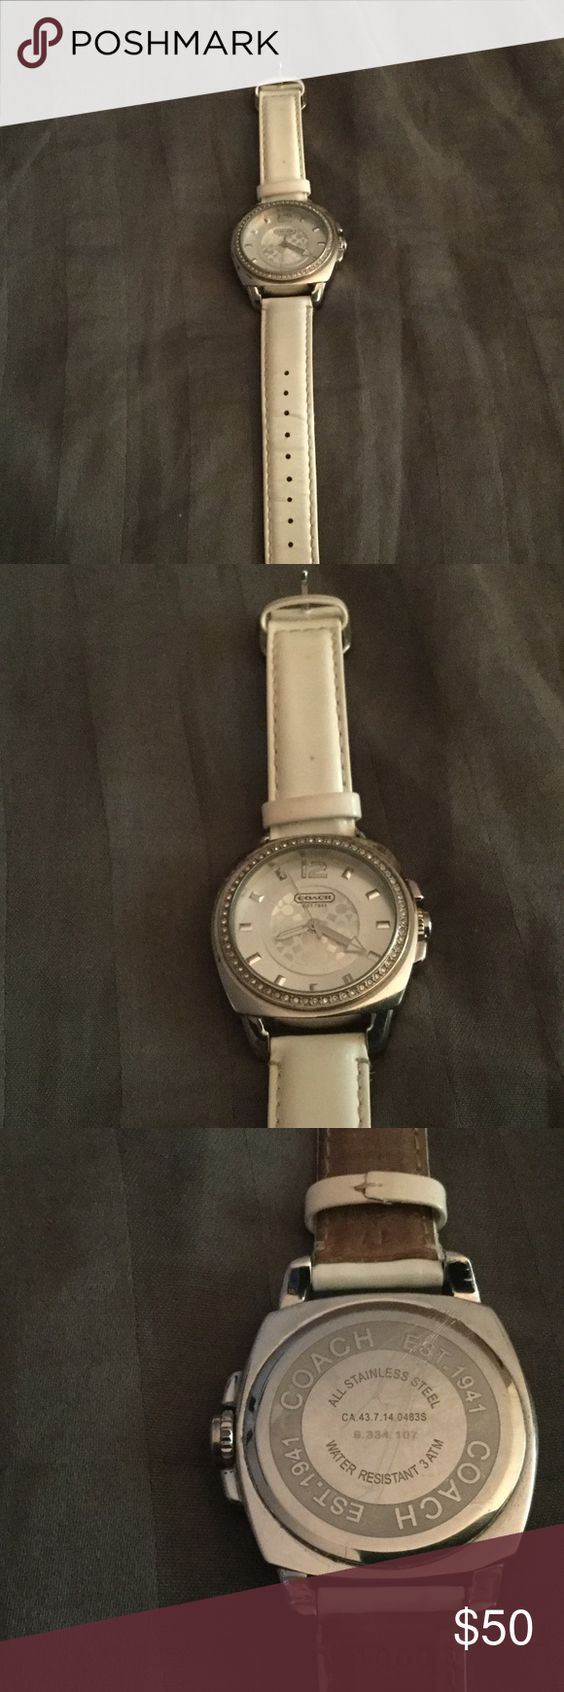 WHITE COACH WATCH ⌚️STILL IN WORKING CONDITION GOOD CONDITION WHITE COACH WATCH SOME SCRATCHES ON THE BACK DIAL AS SHOWN IN PIC 3. JUST REPLACED THE BATTERY. Coach Jewelry